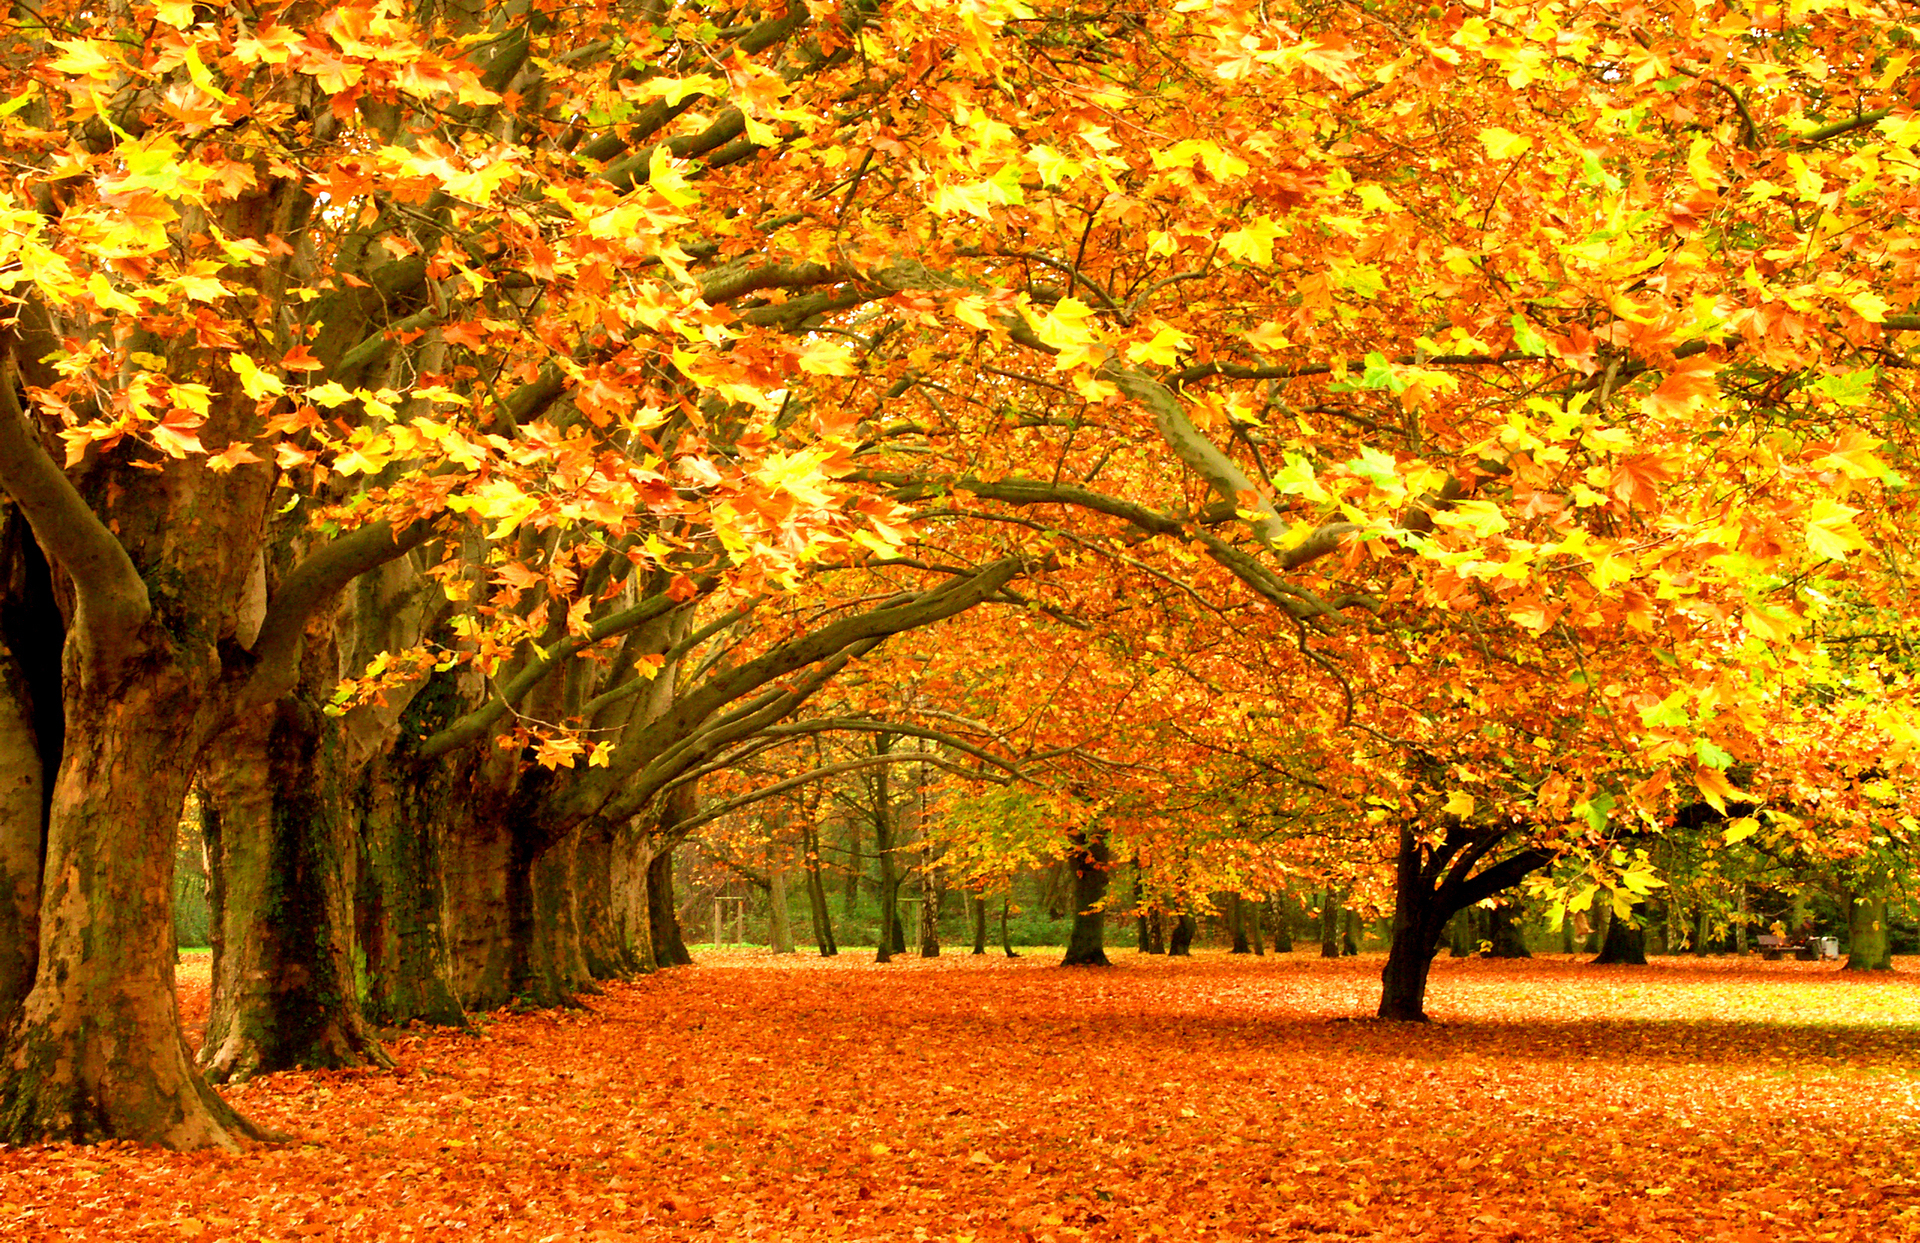 Beautiful Autumn Forest Wallpaper PC 6765 Wallpaper High Resolution 1920x1243